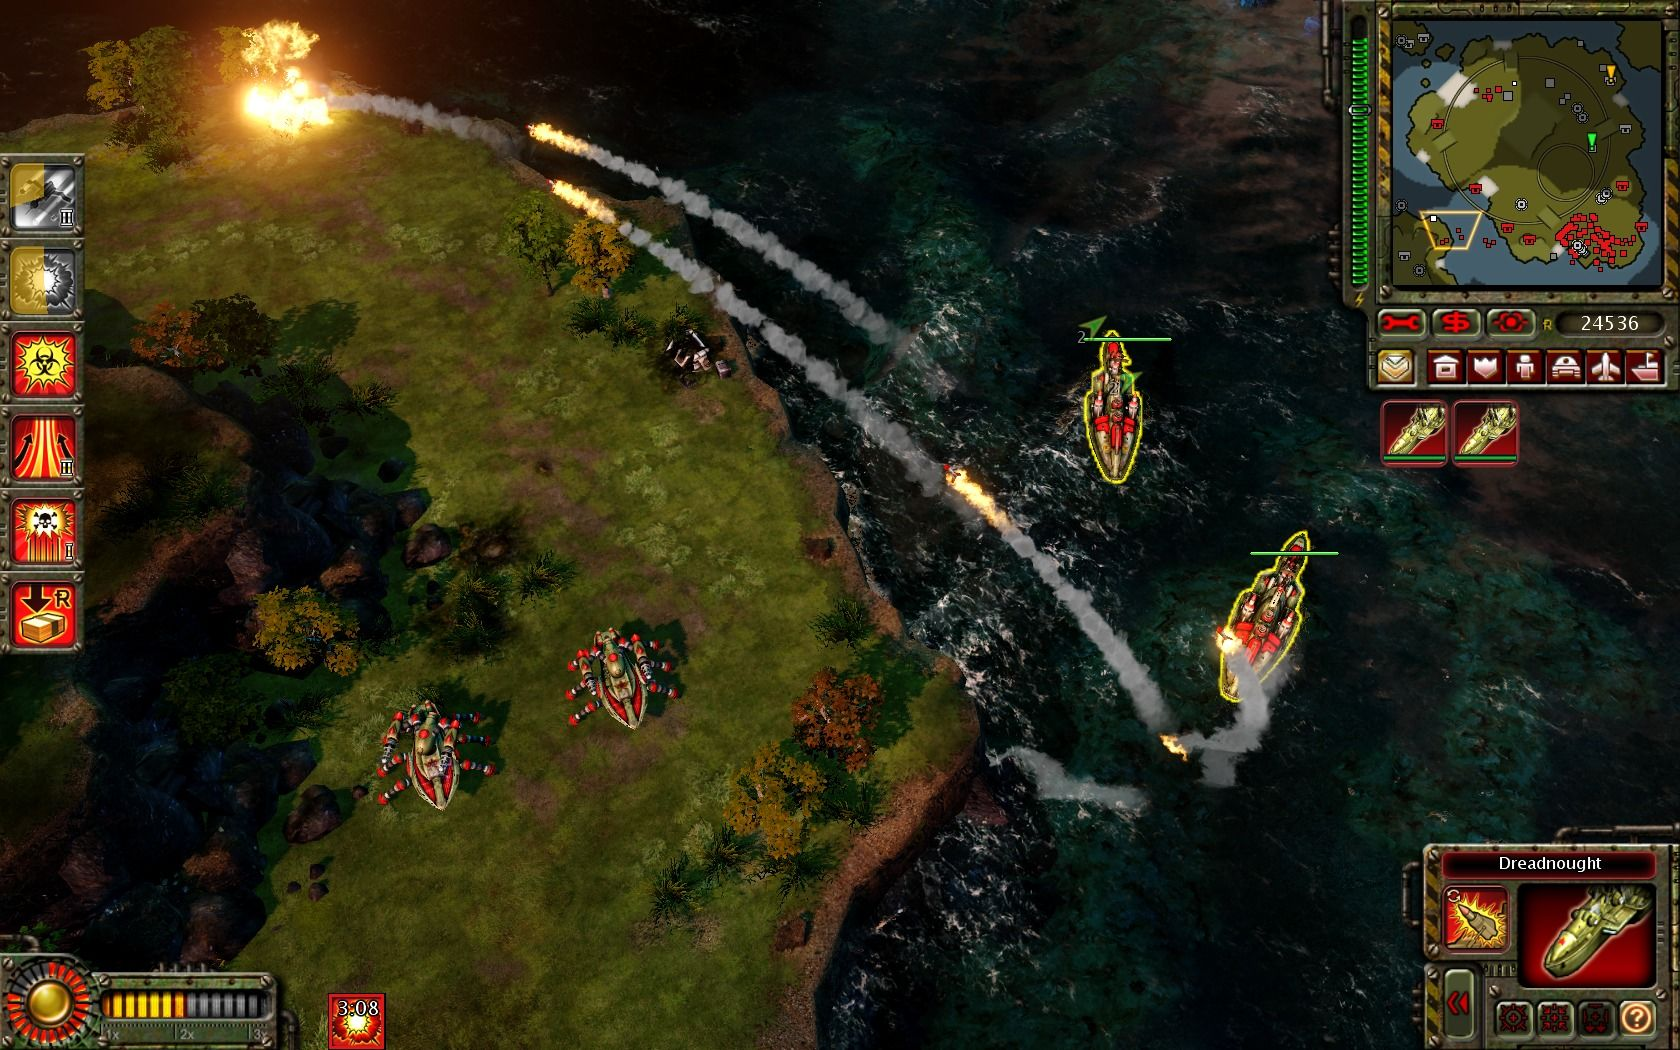 Command & Conquer: Red Alert 3 - Uprising Windows Dreadnoughts are deadly at long range